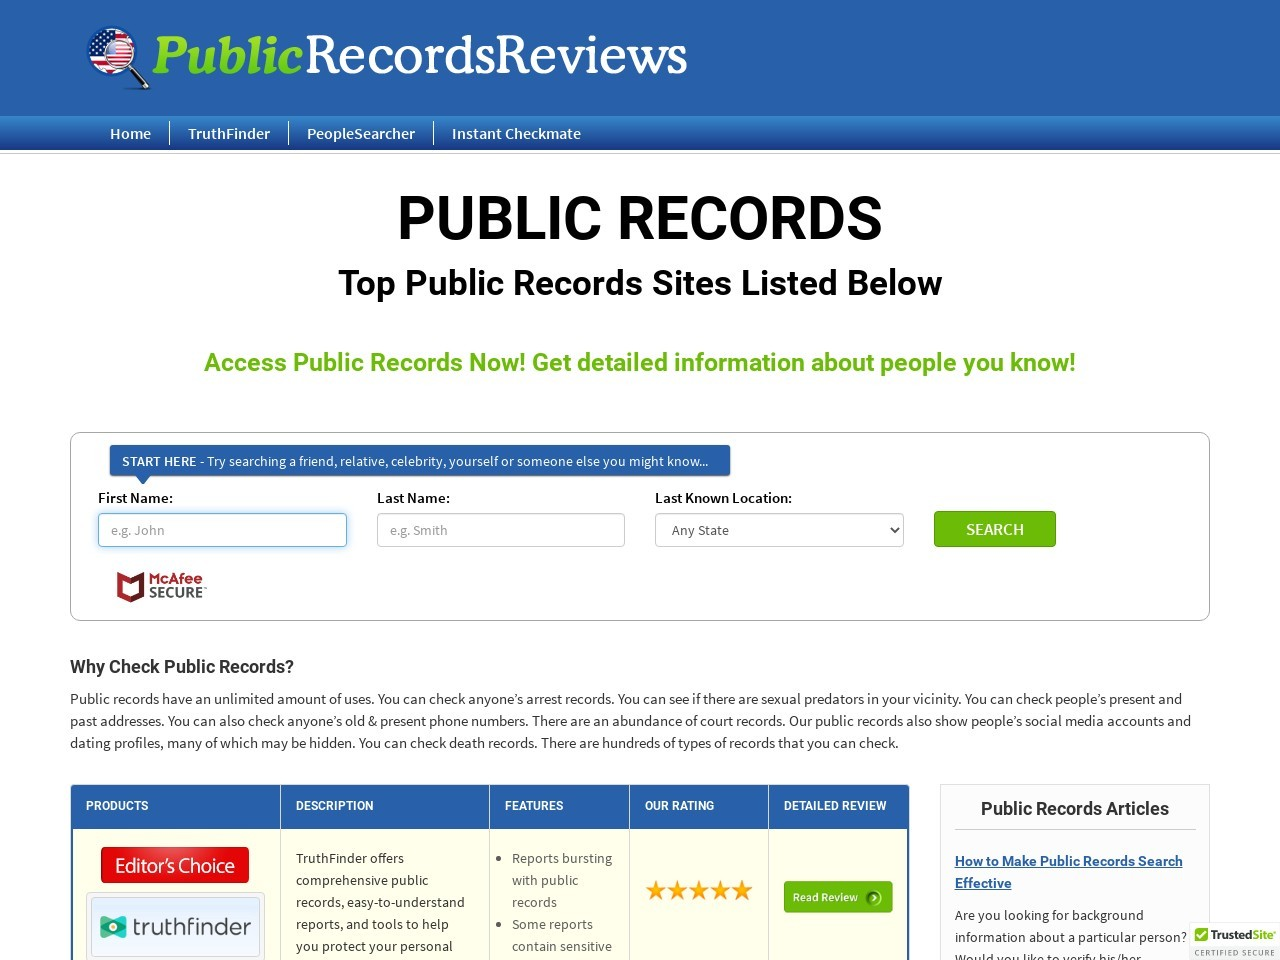 publicrecordsreviews.com